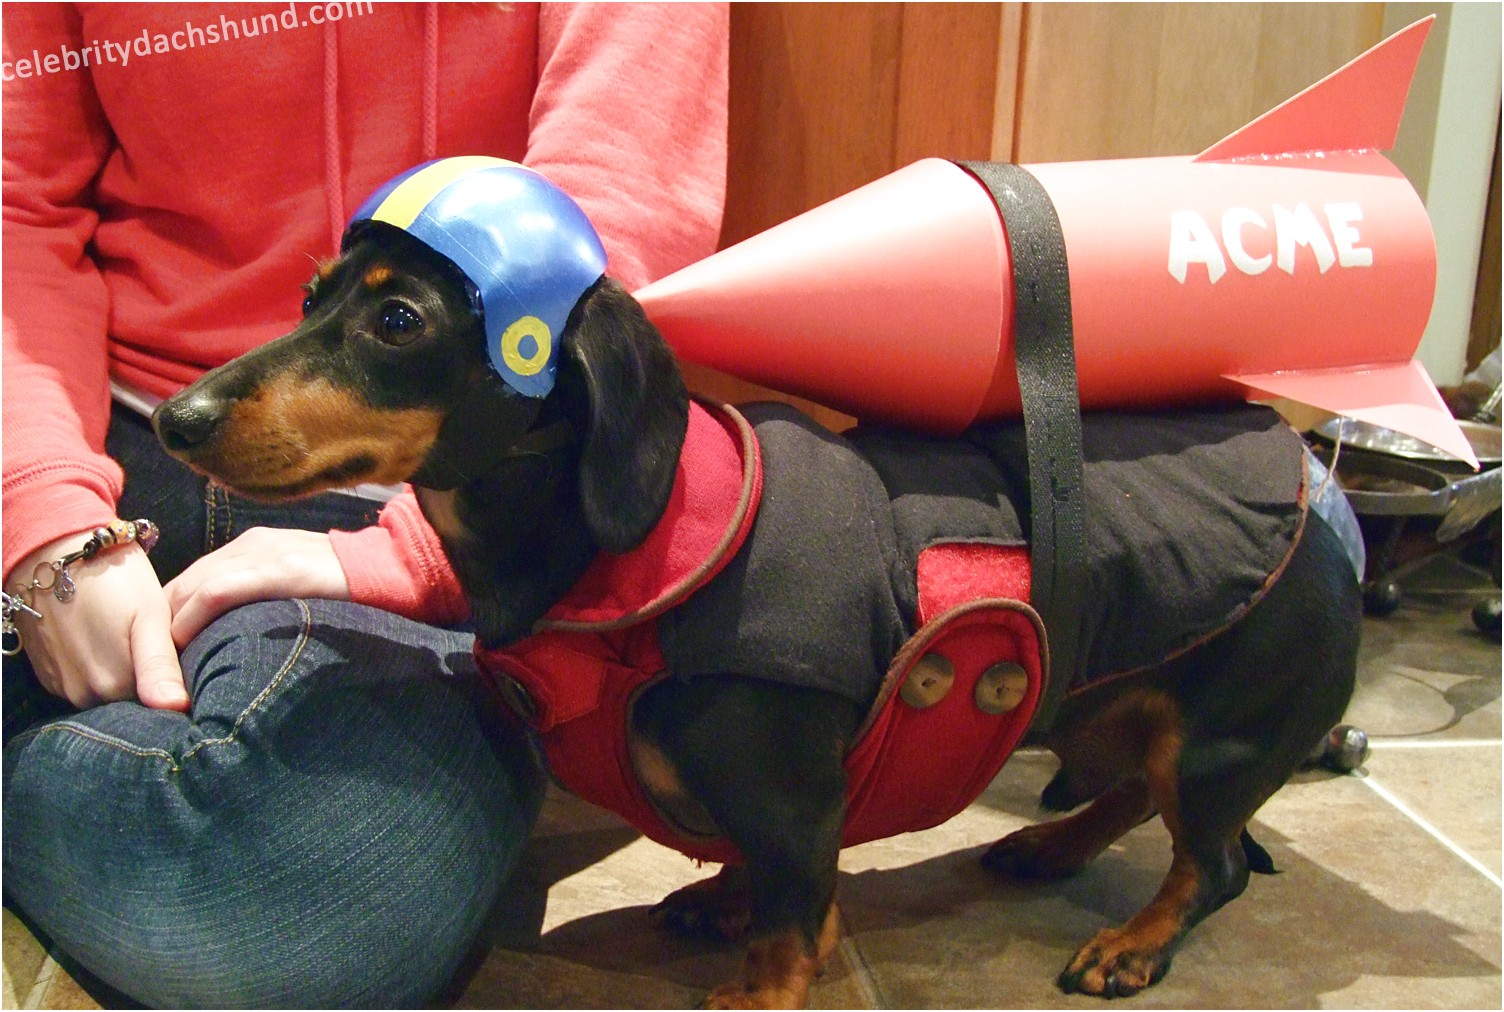 dachshund halloween costumes for sale